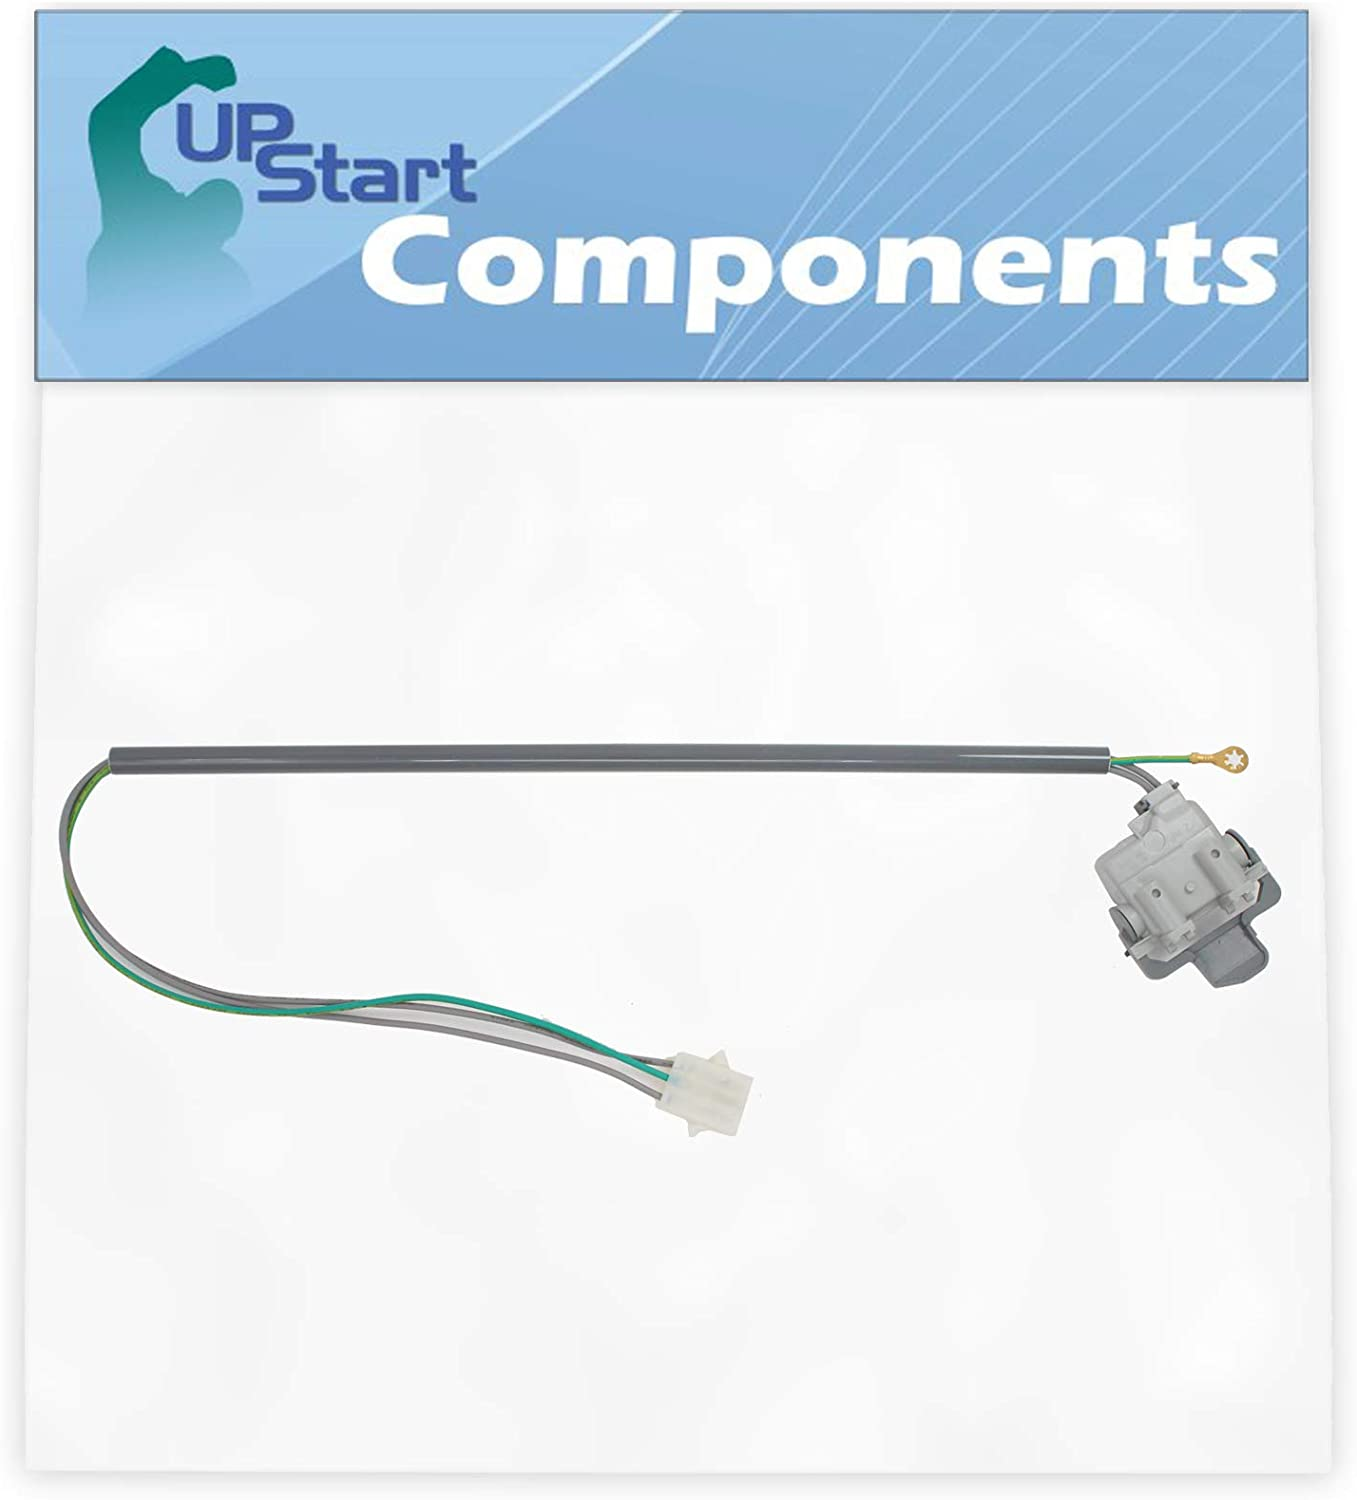 285671 Washer Lid Switch Replacement for Whirlpool LSN7233BQ1 Washing Machine - Compatible with 3352630 Lid Switch - UpStart Components Brand